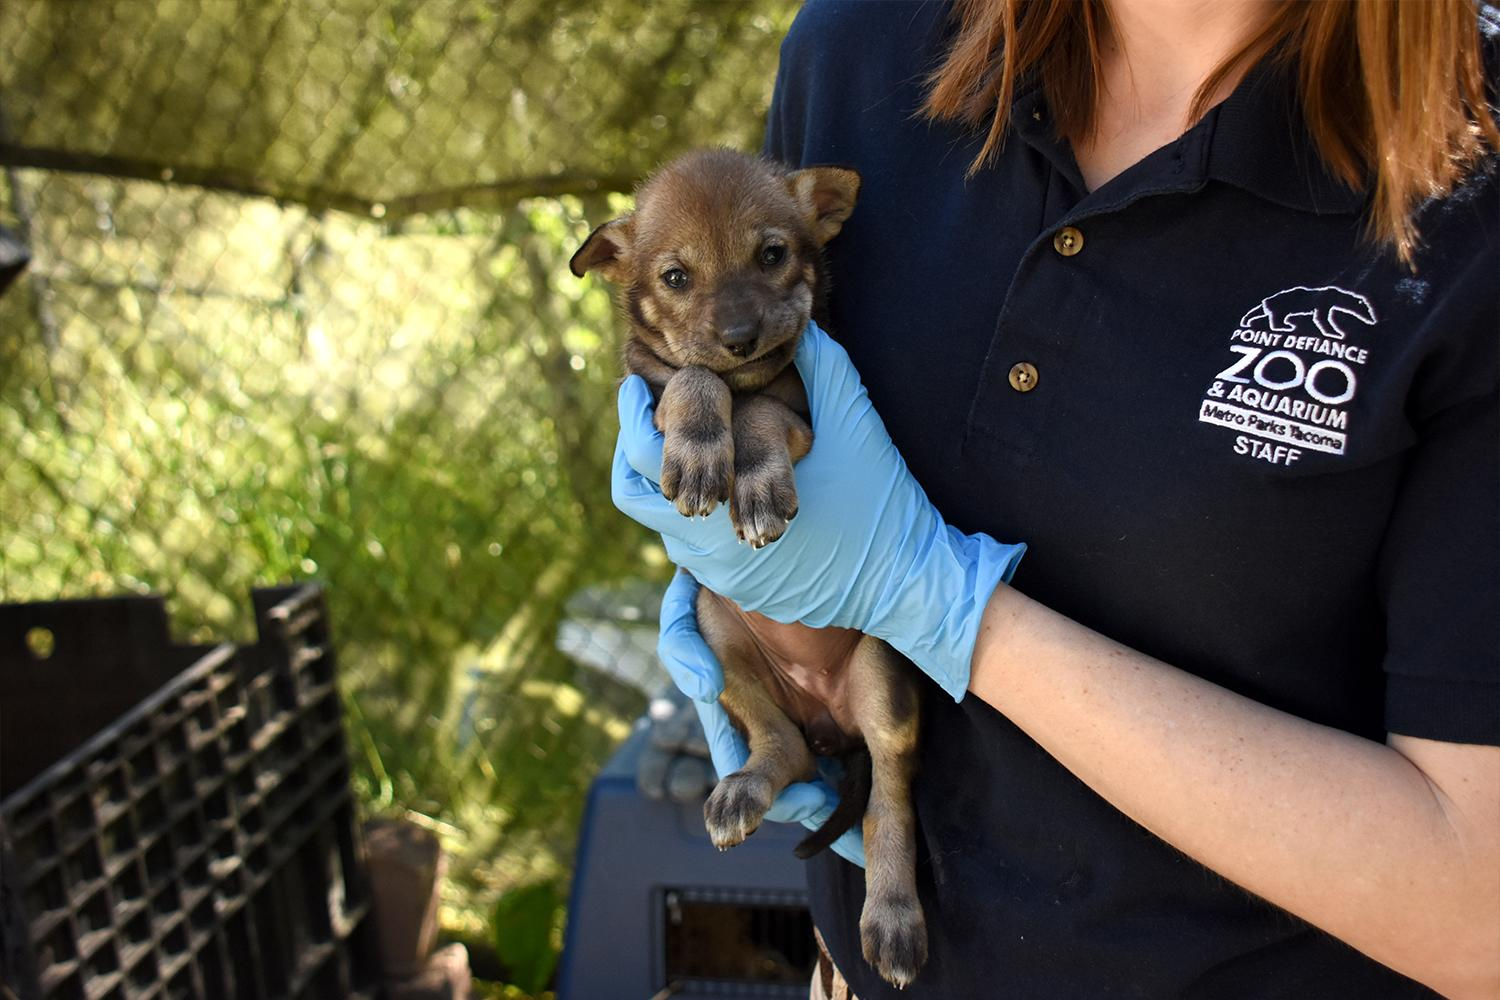 Adorable, and endangered. Meet the eight Red Wolf Pups born May 10, 2019 to the Point Defiance Zoo in Tacoma, WA. The pups have officially been named via the public and staff: Camellia, Chester, Cypress, Hawthorn, Magnolia, Myrtle, Peat and Willow! A recent exam shows all the pups are healthy, and weight between 3 and 4 pounds. While visitors to the zoo aren't guaranteed to see the little ones, each day they venture out more and more. North American red wolves are critically endangered, with only about 40 in the wild and just over 250 in zoos and wildlife centers across the nation.{ } (Photo: Katie Cotterill / Point Defiance Zoo)